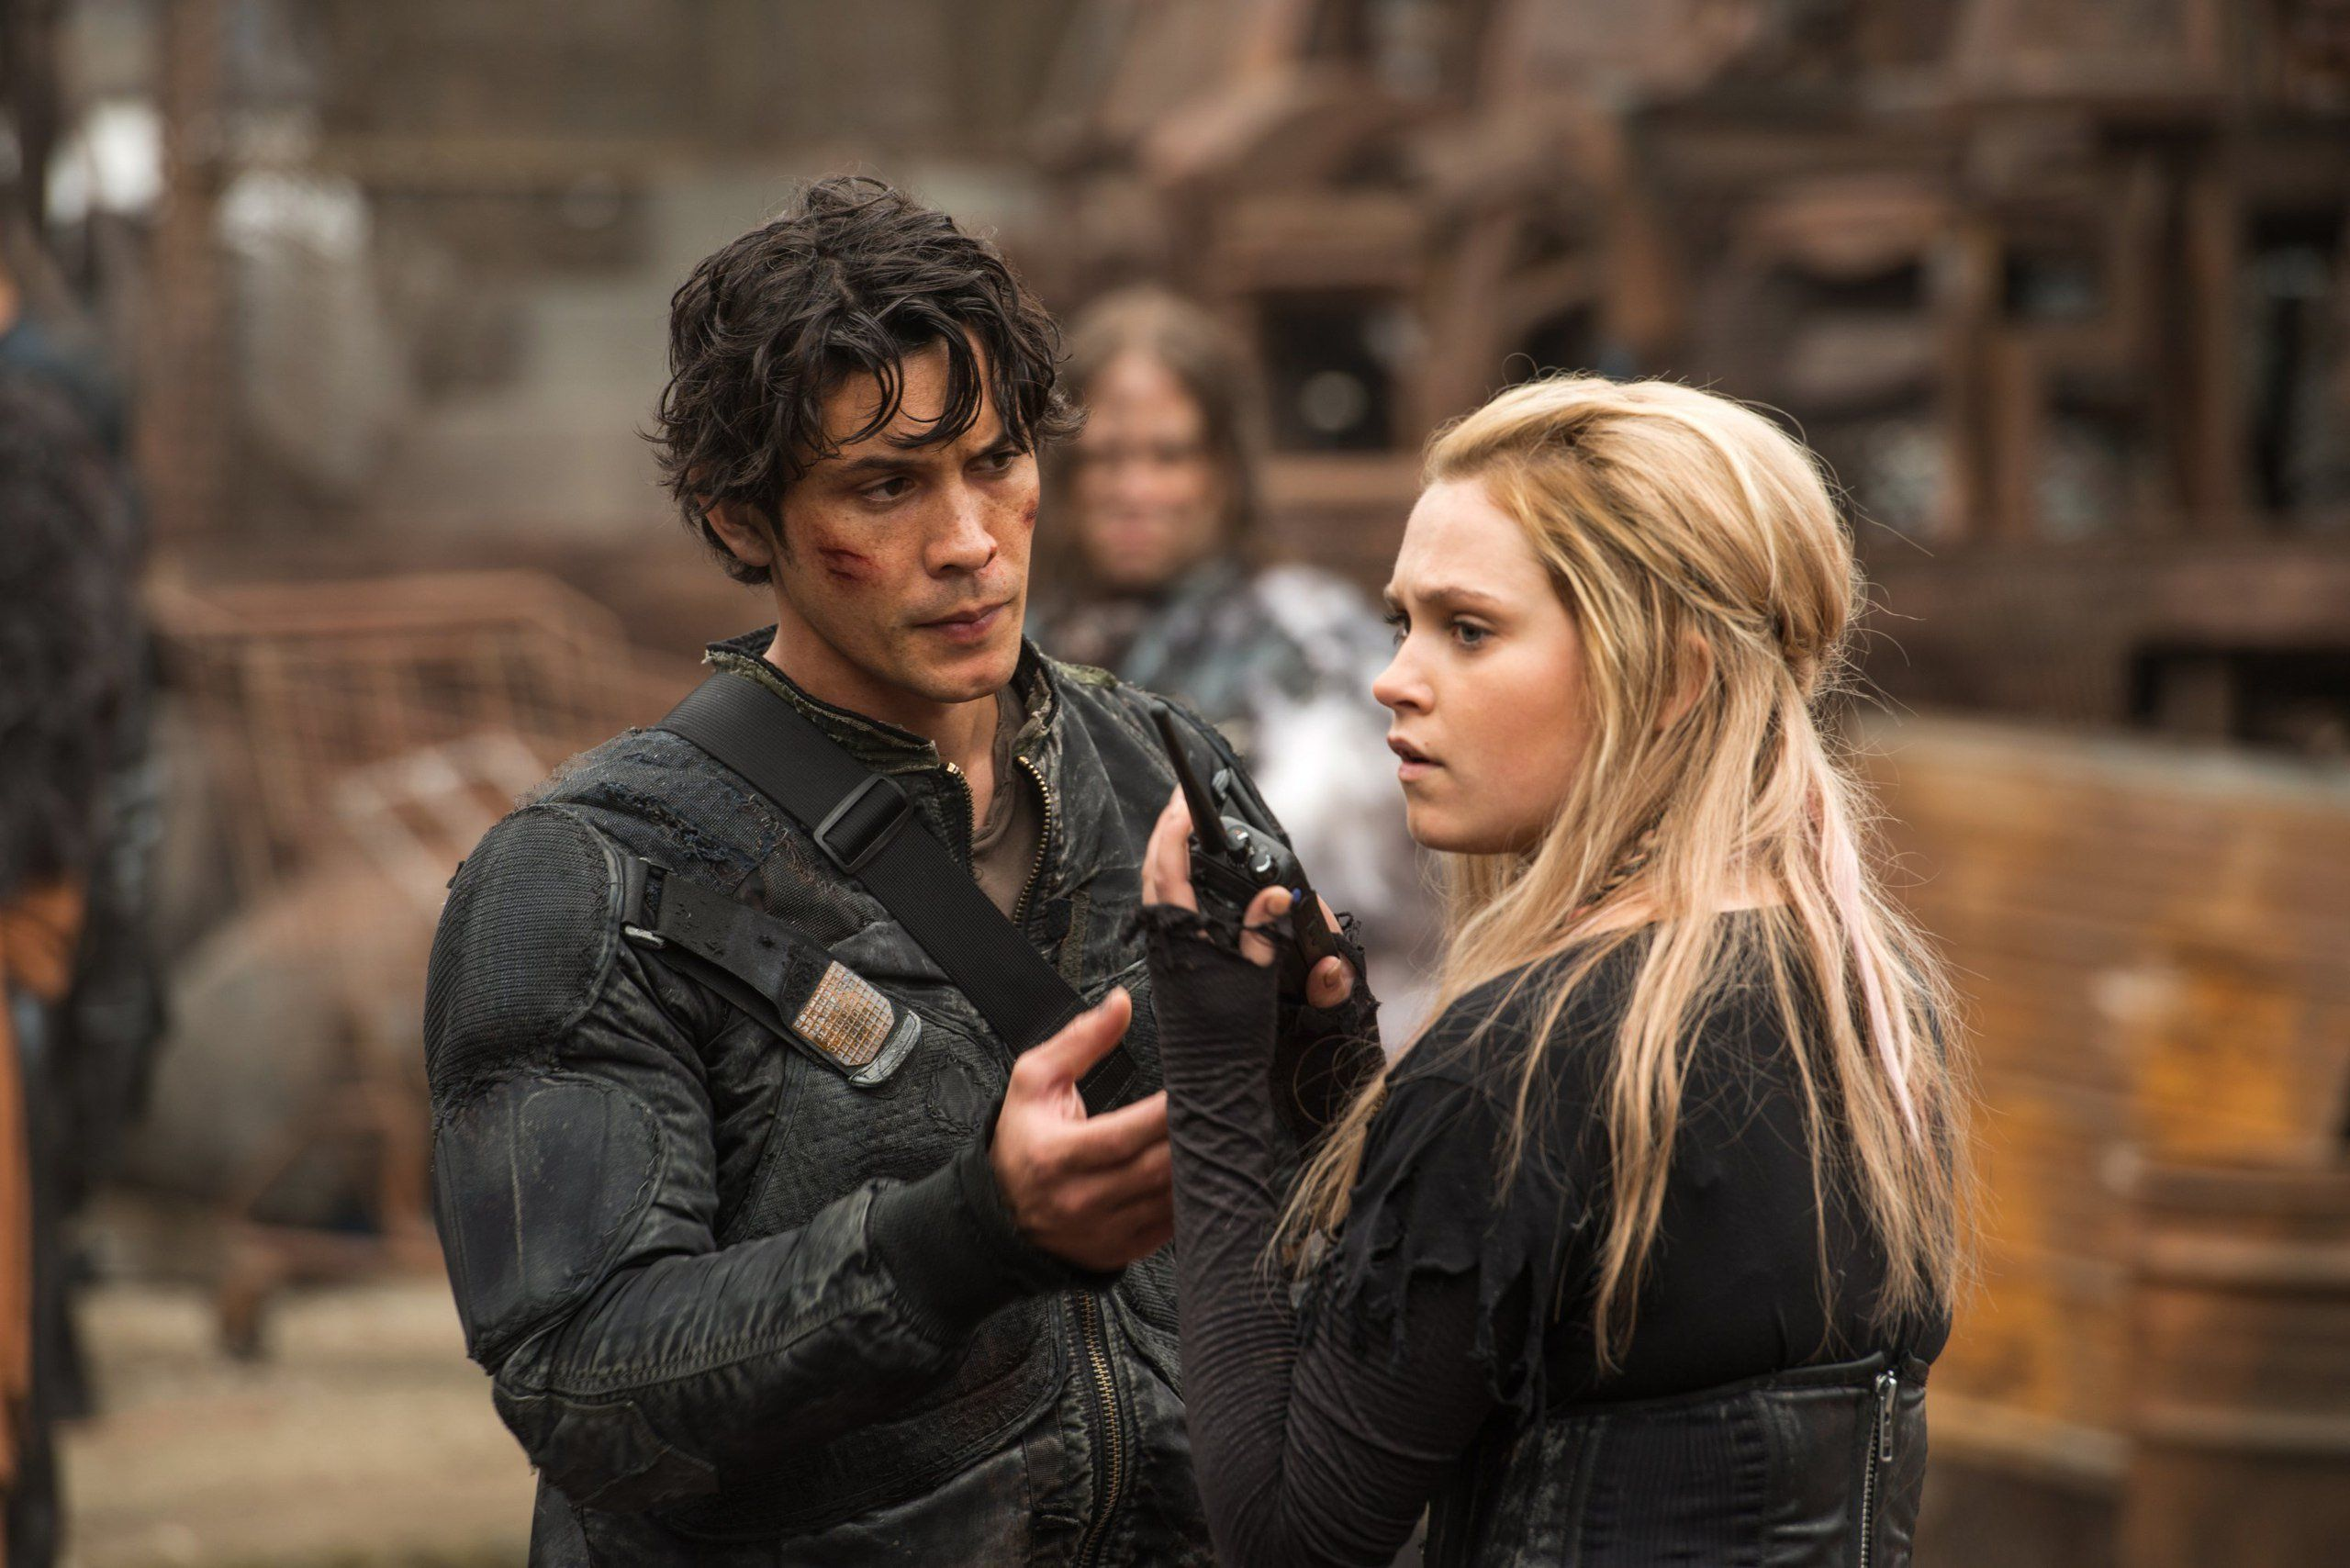 Bellamy Blake and Clarke Griffin in The 100 season 4